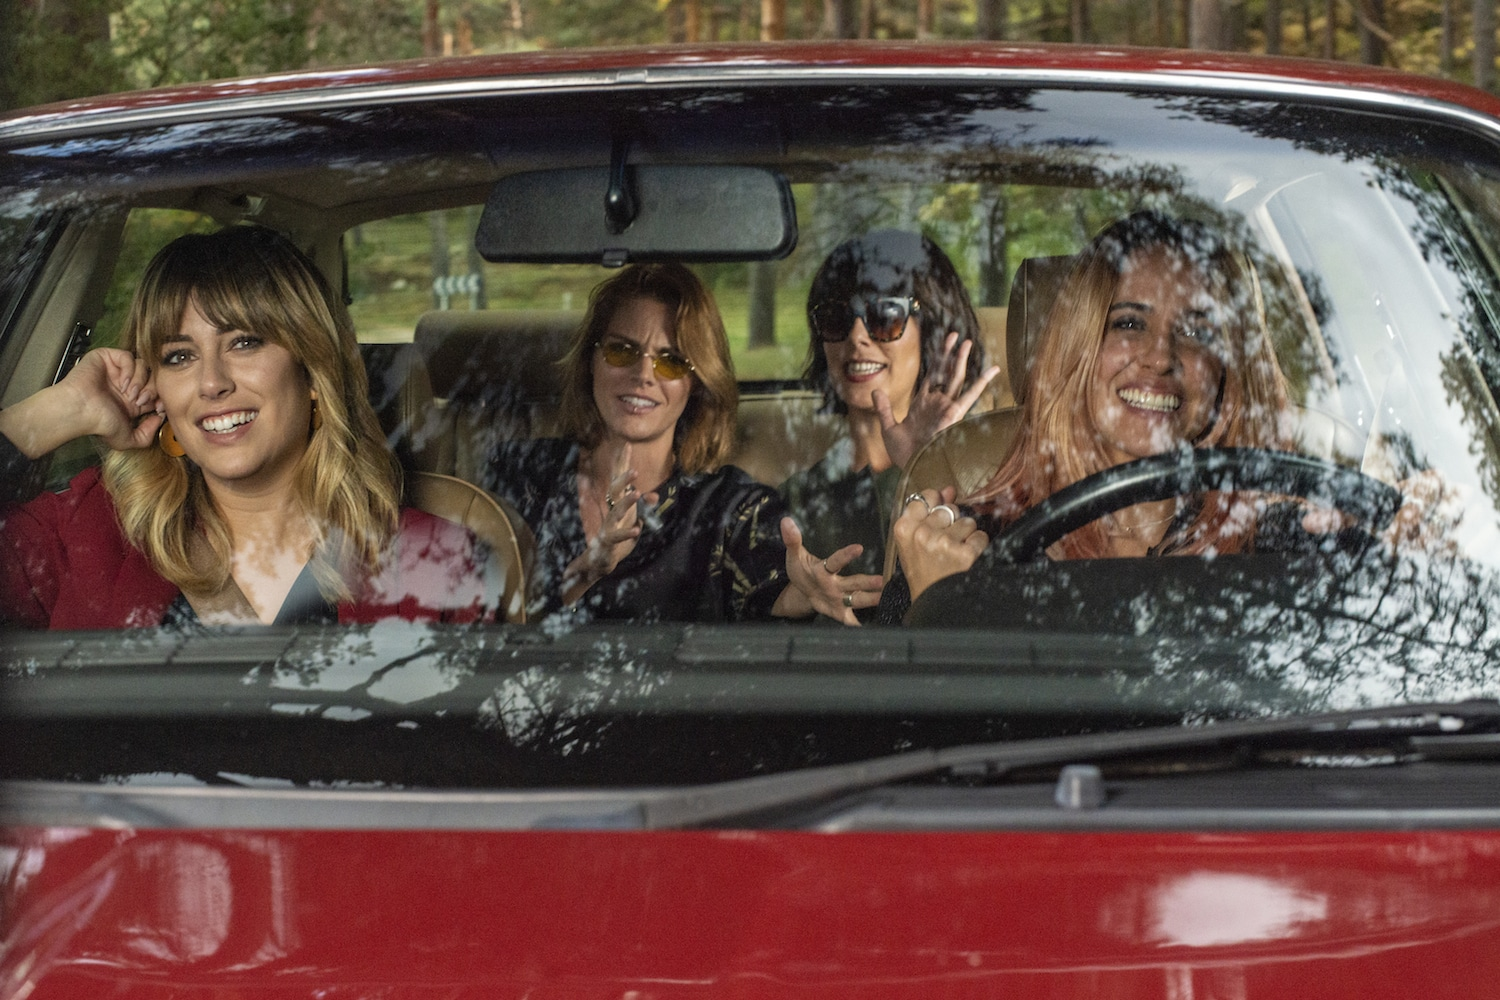 TRAILER: 'A Pesar de Todo' Is a Road Trip Comedy About Sisters Searching for Their Biological Dads